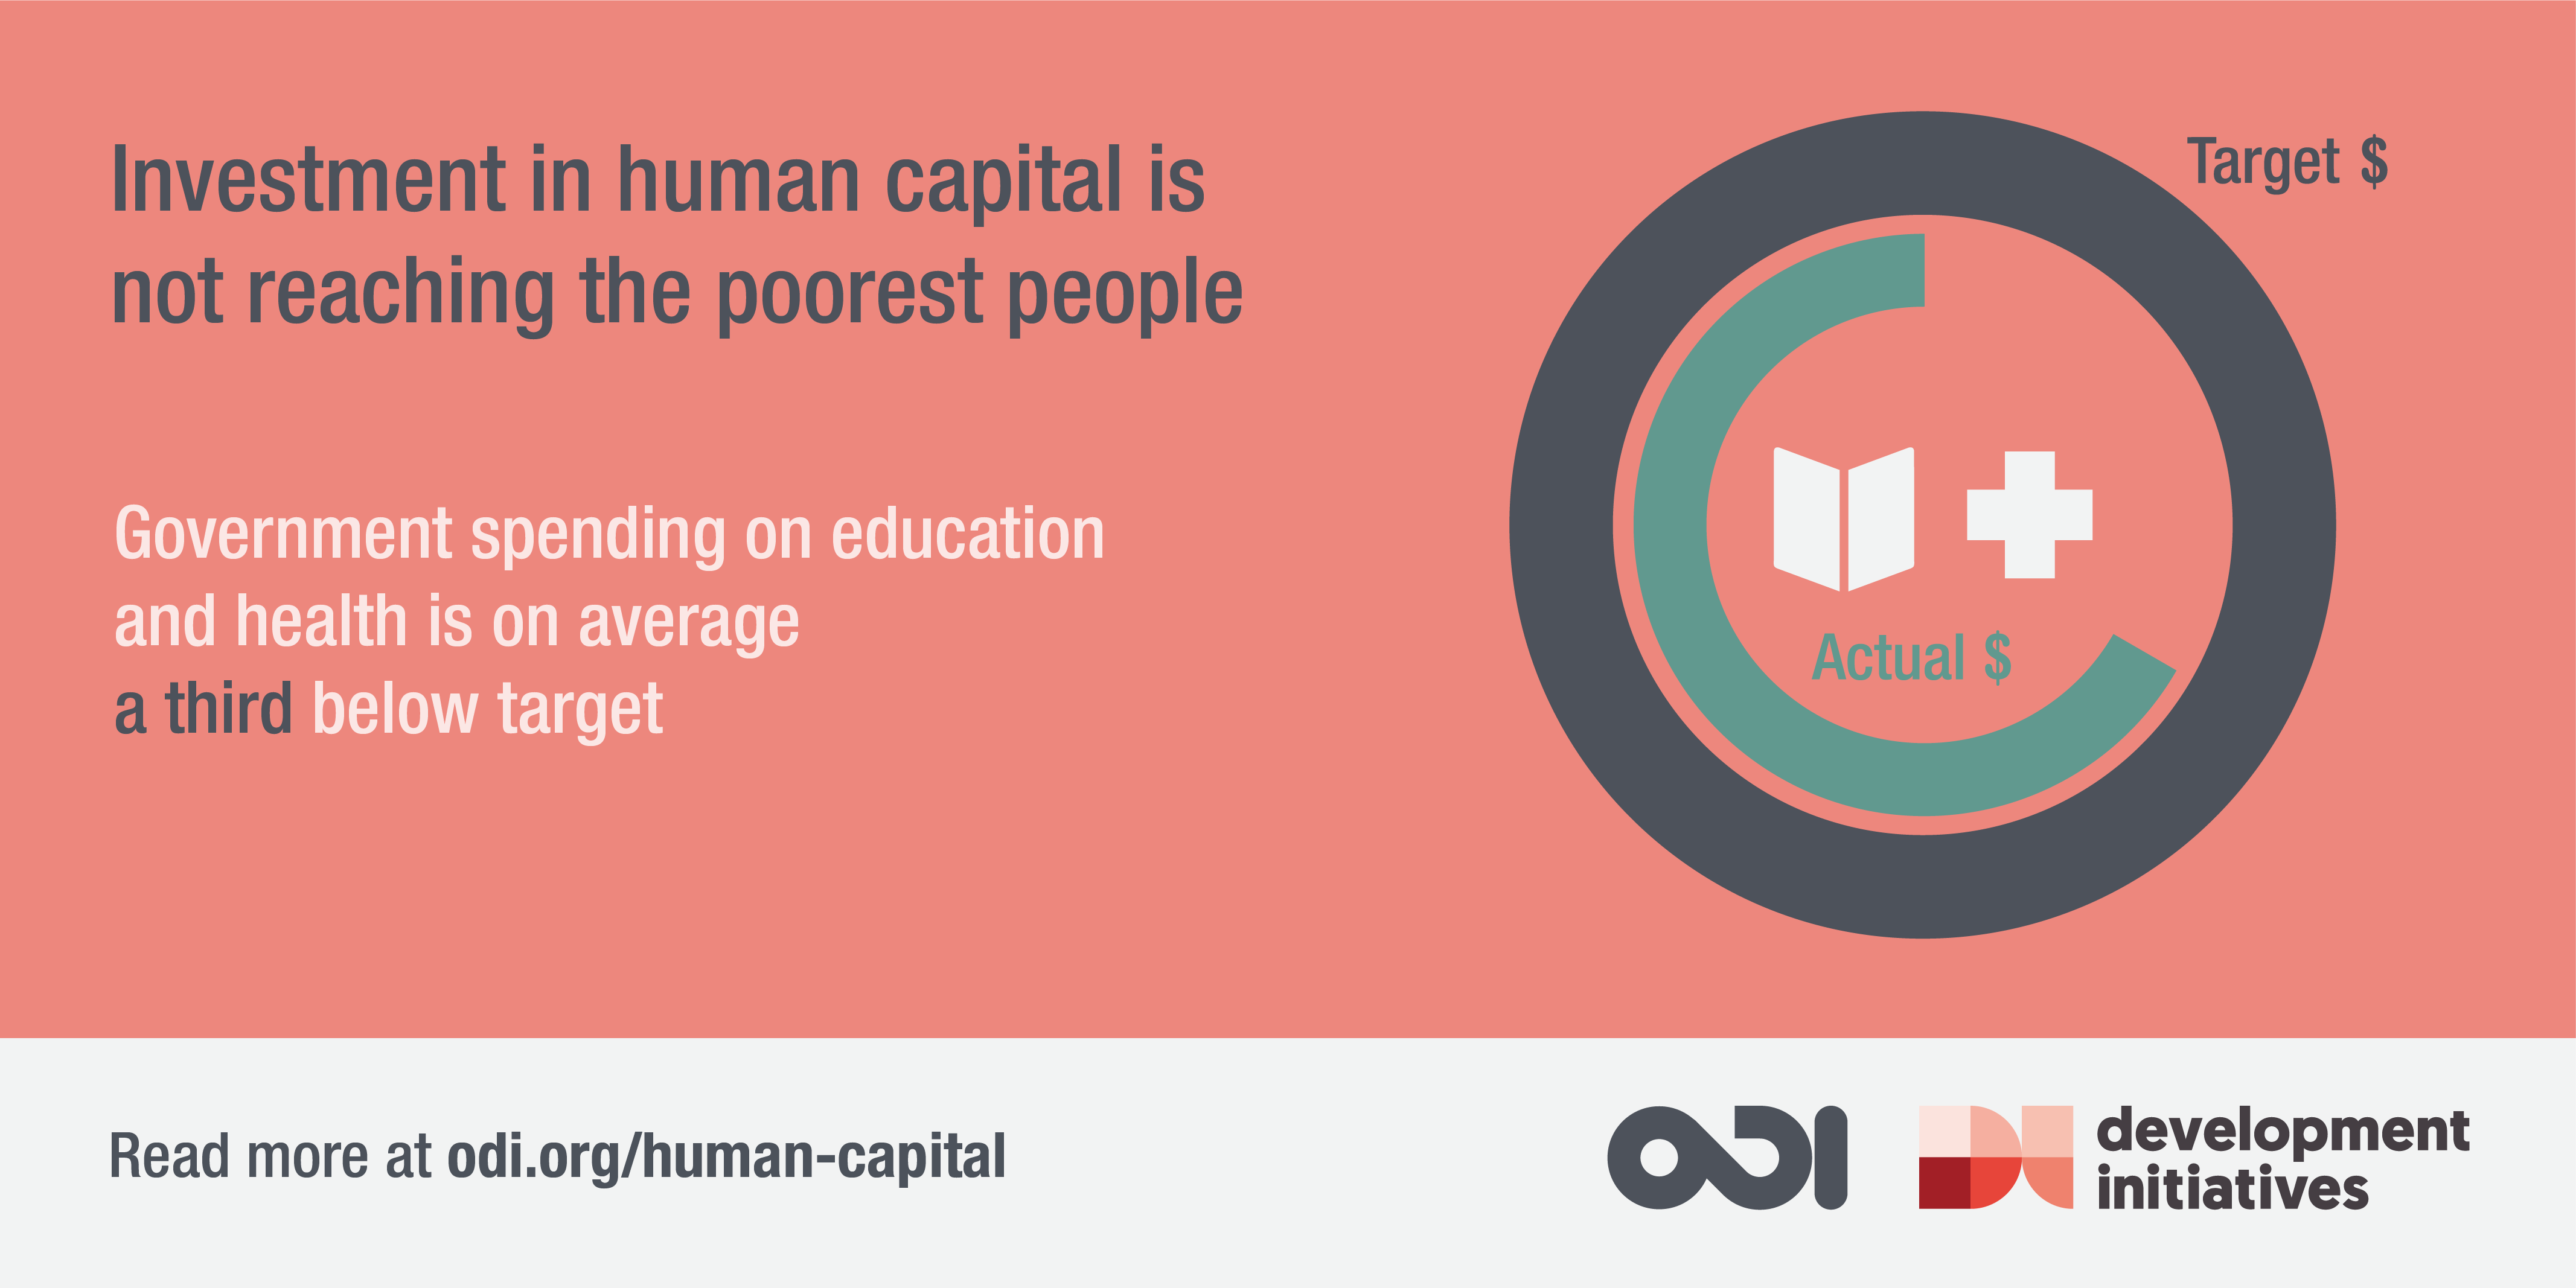 Government spending on education and health is on average  a third below target